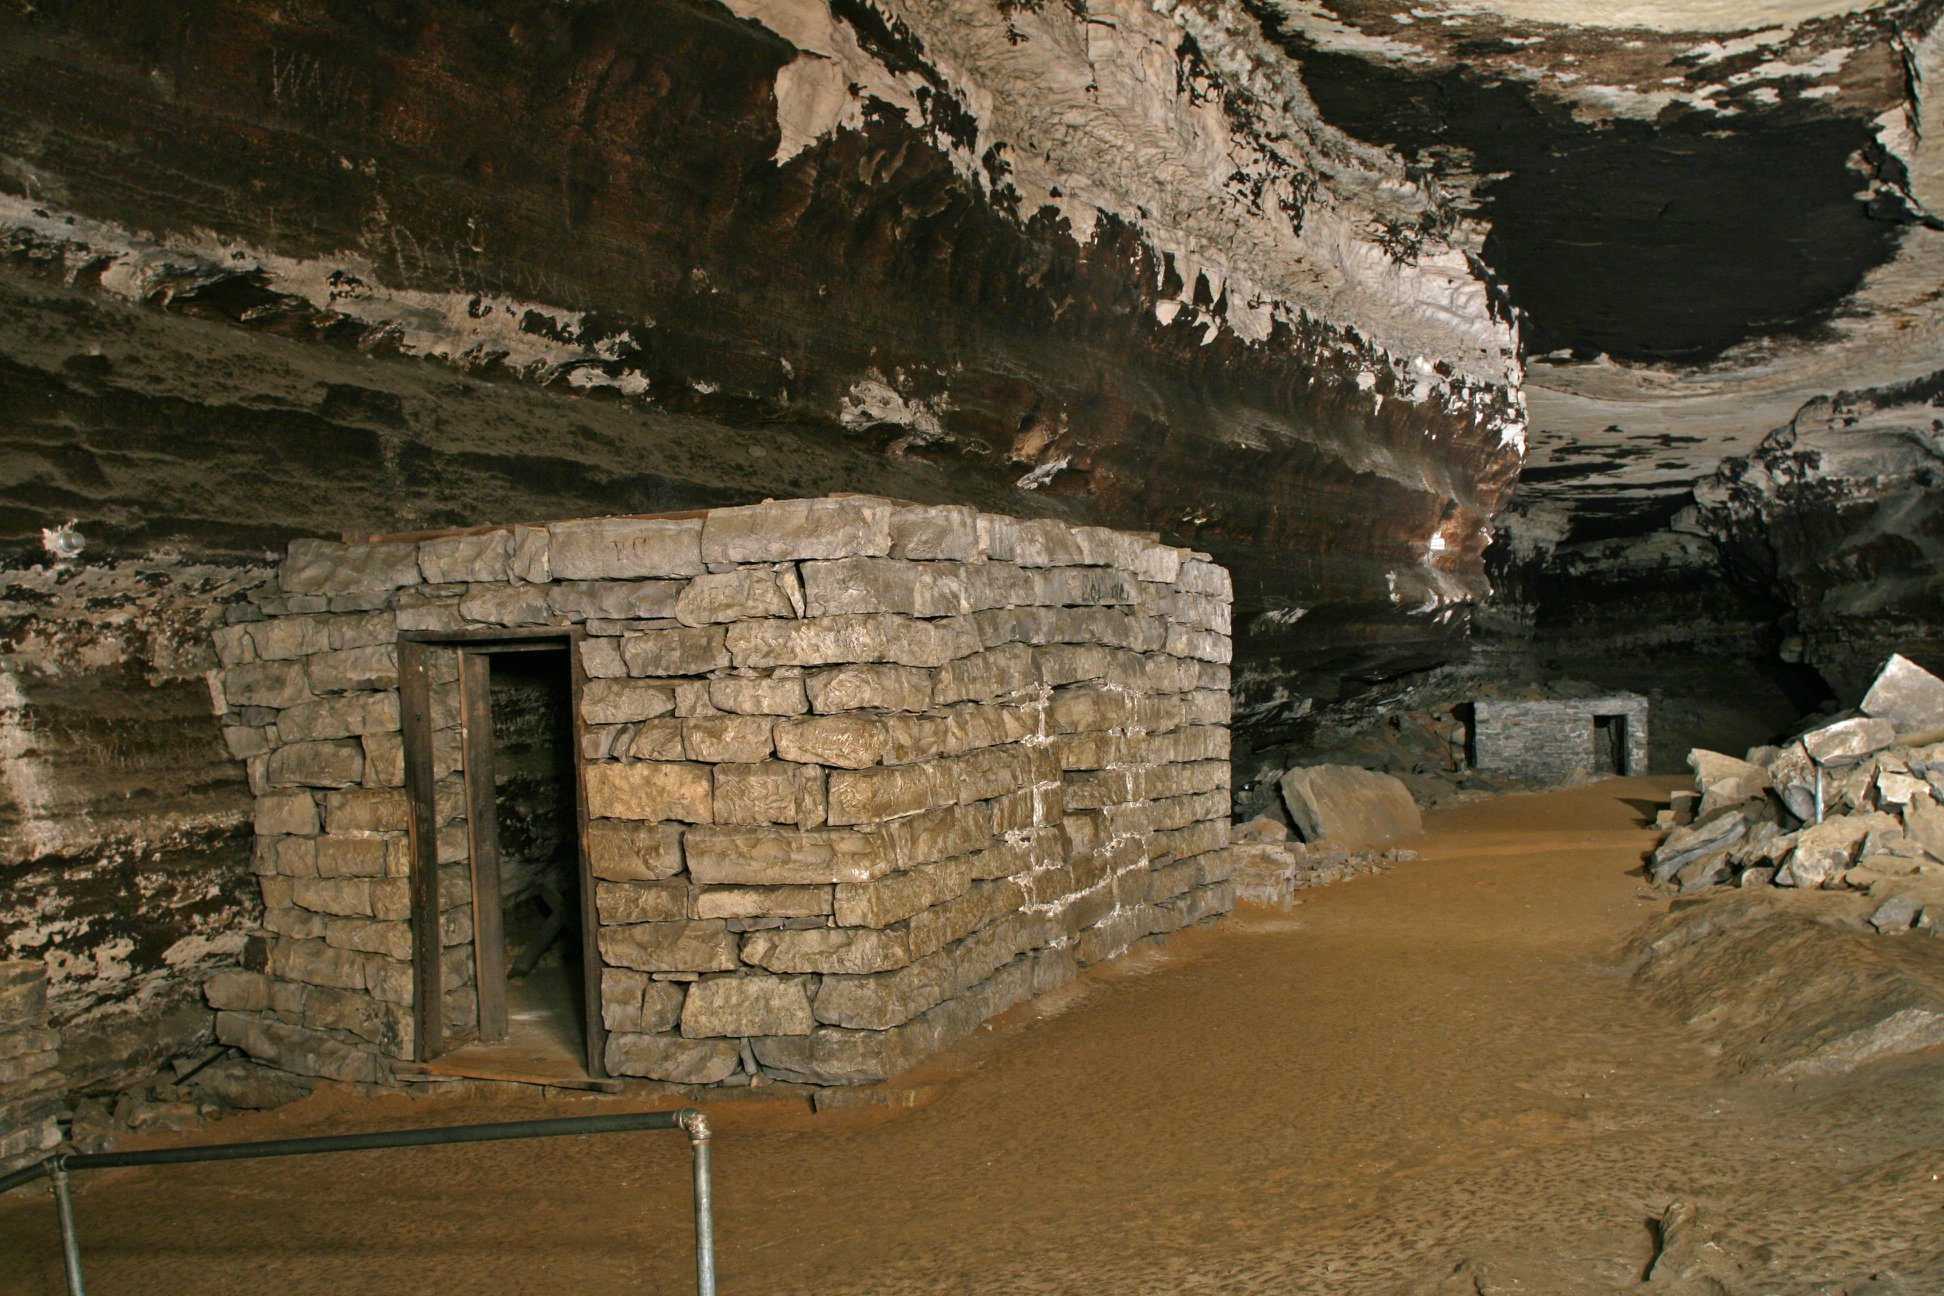 This Cave Hike In Kentucky Was Named One Of The Scariest Haunted Hiking Trails In The U.S.